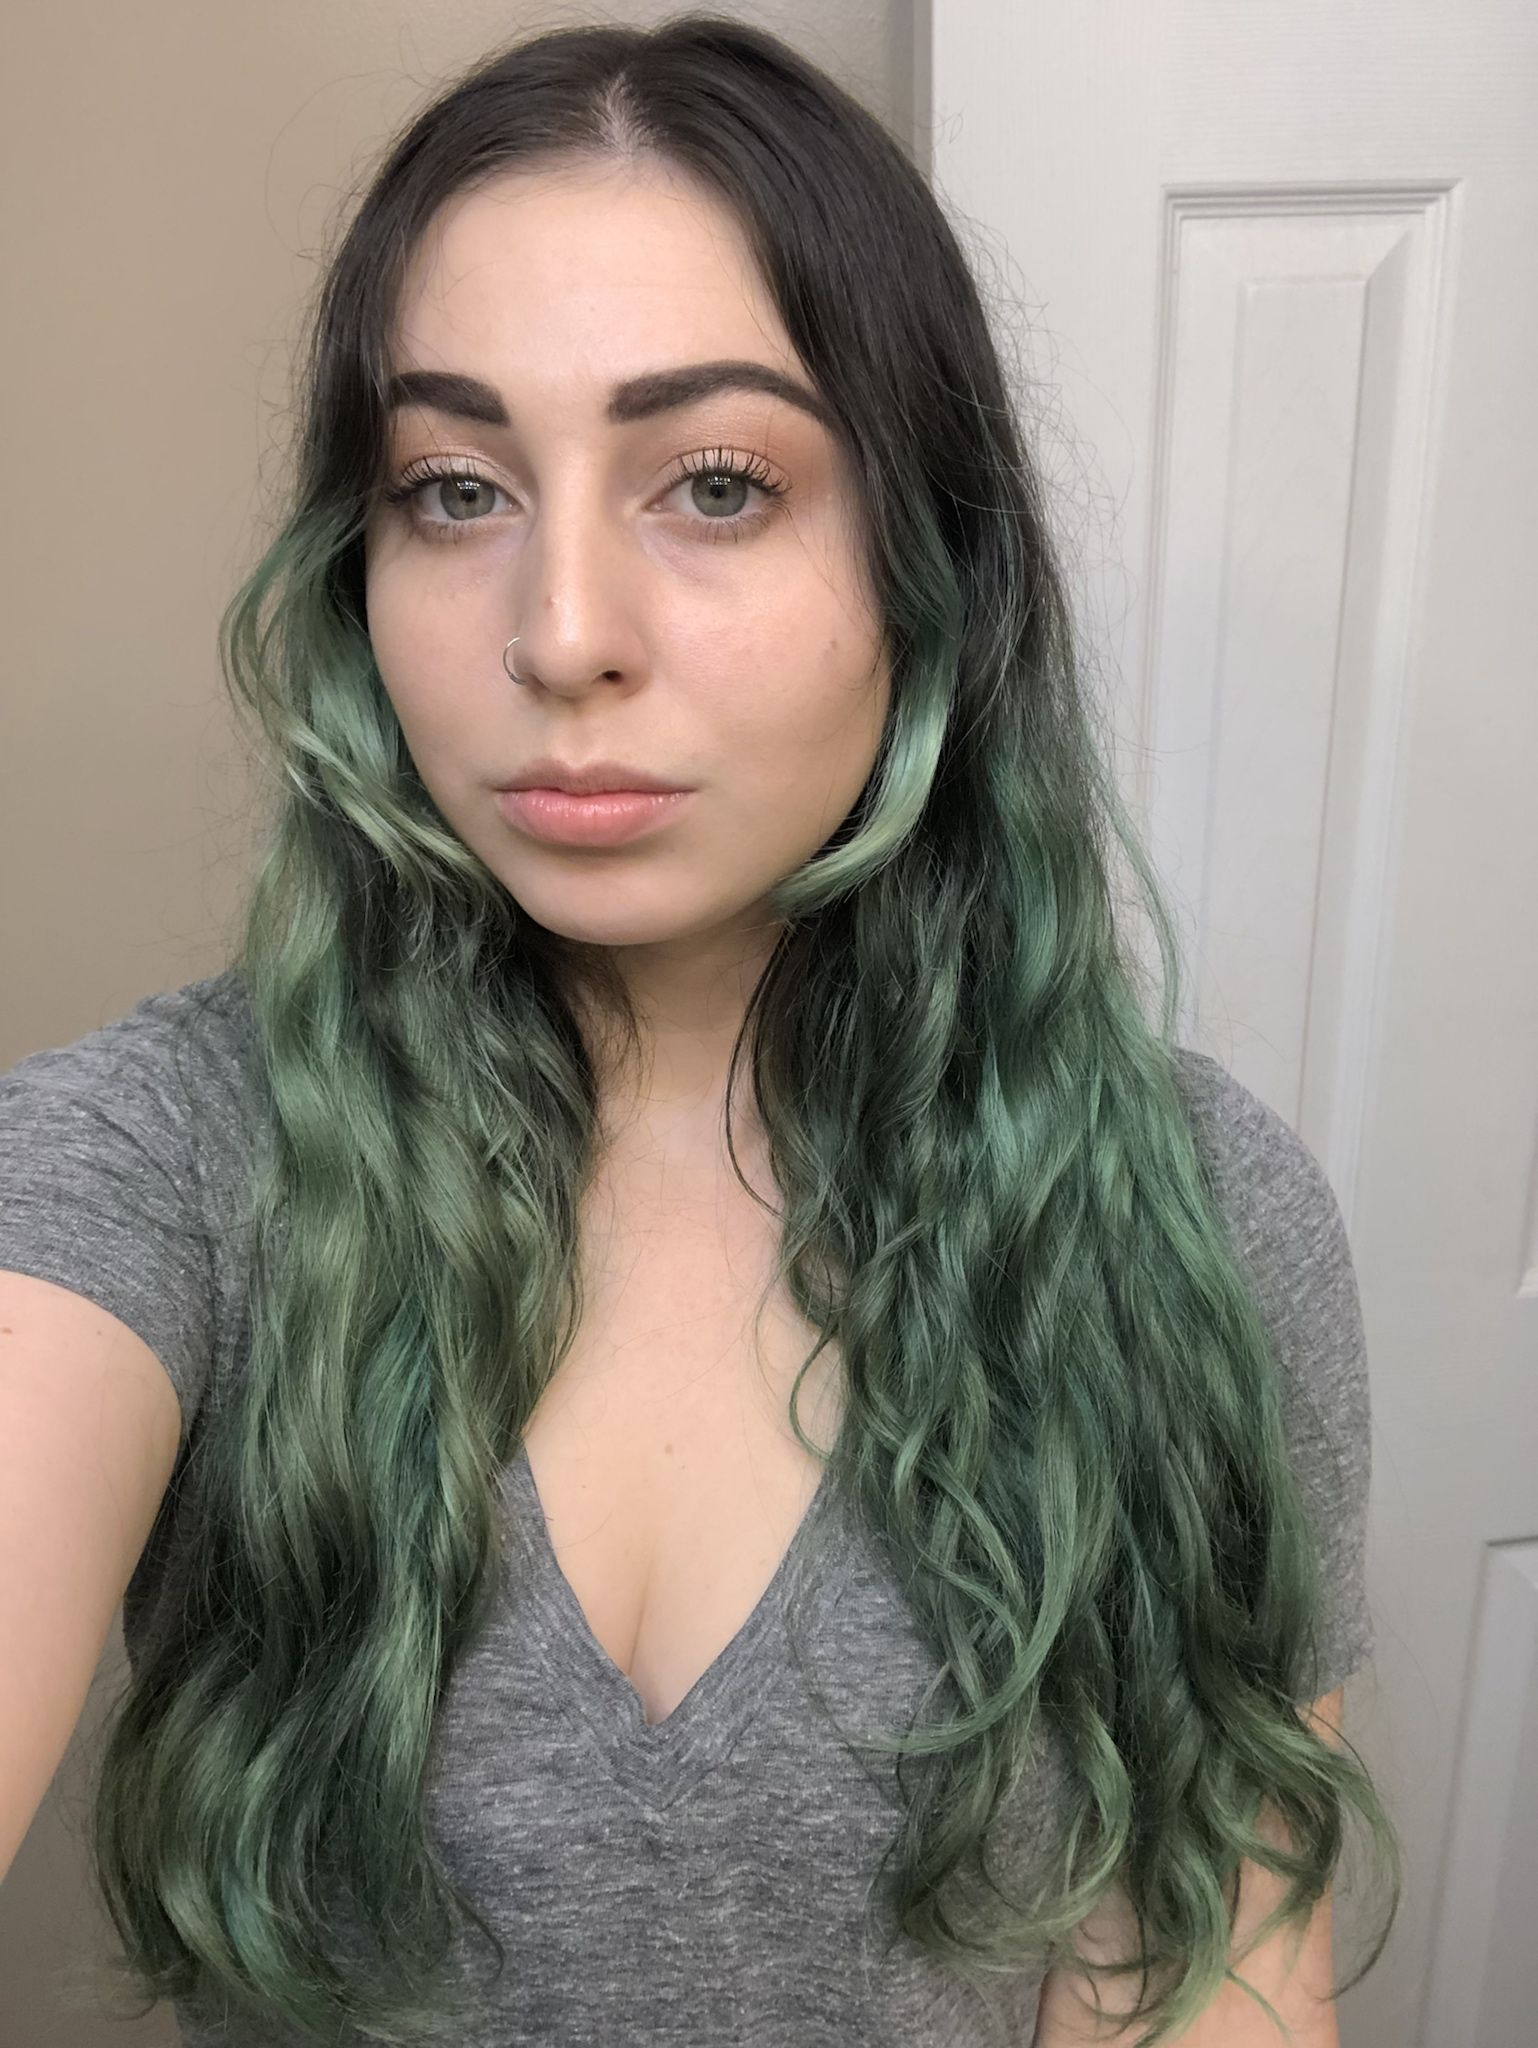 Hi So I Really Need Some Hair Help I Want To Get A Trim But Id Like To Get Something Done To The Front Pieces Too To Frame My Hair Help